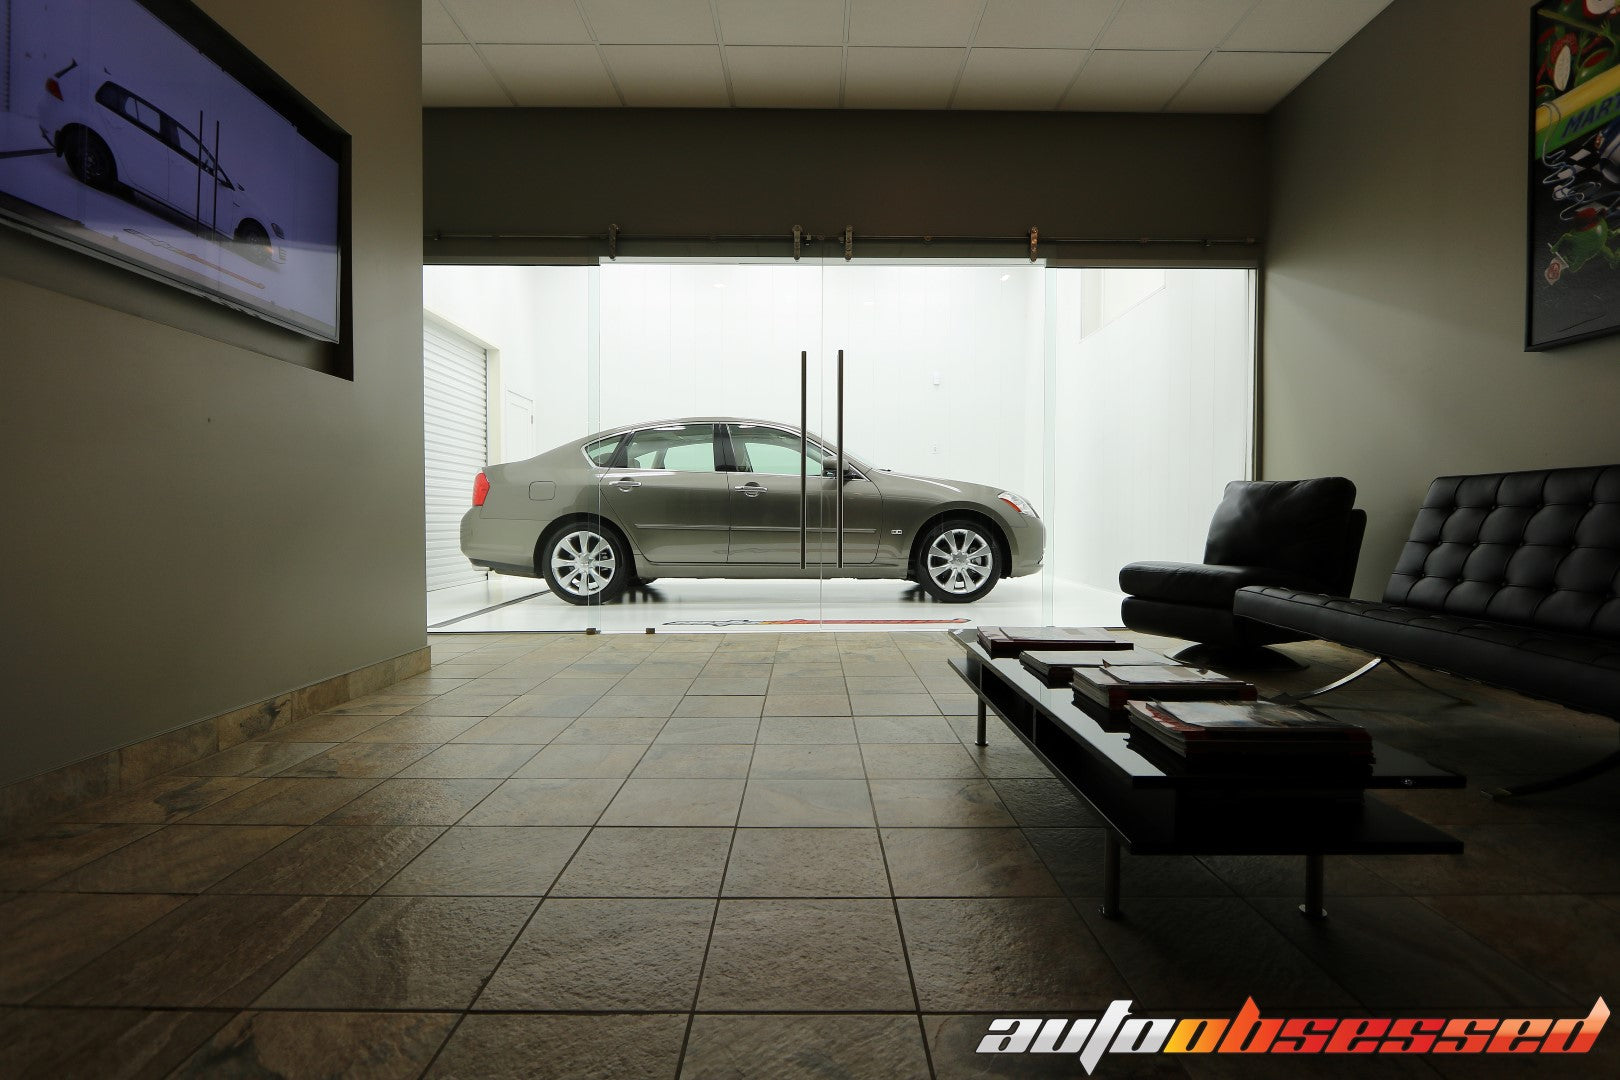 2006 Infinity M35x Clean Room - Auto Obsessed